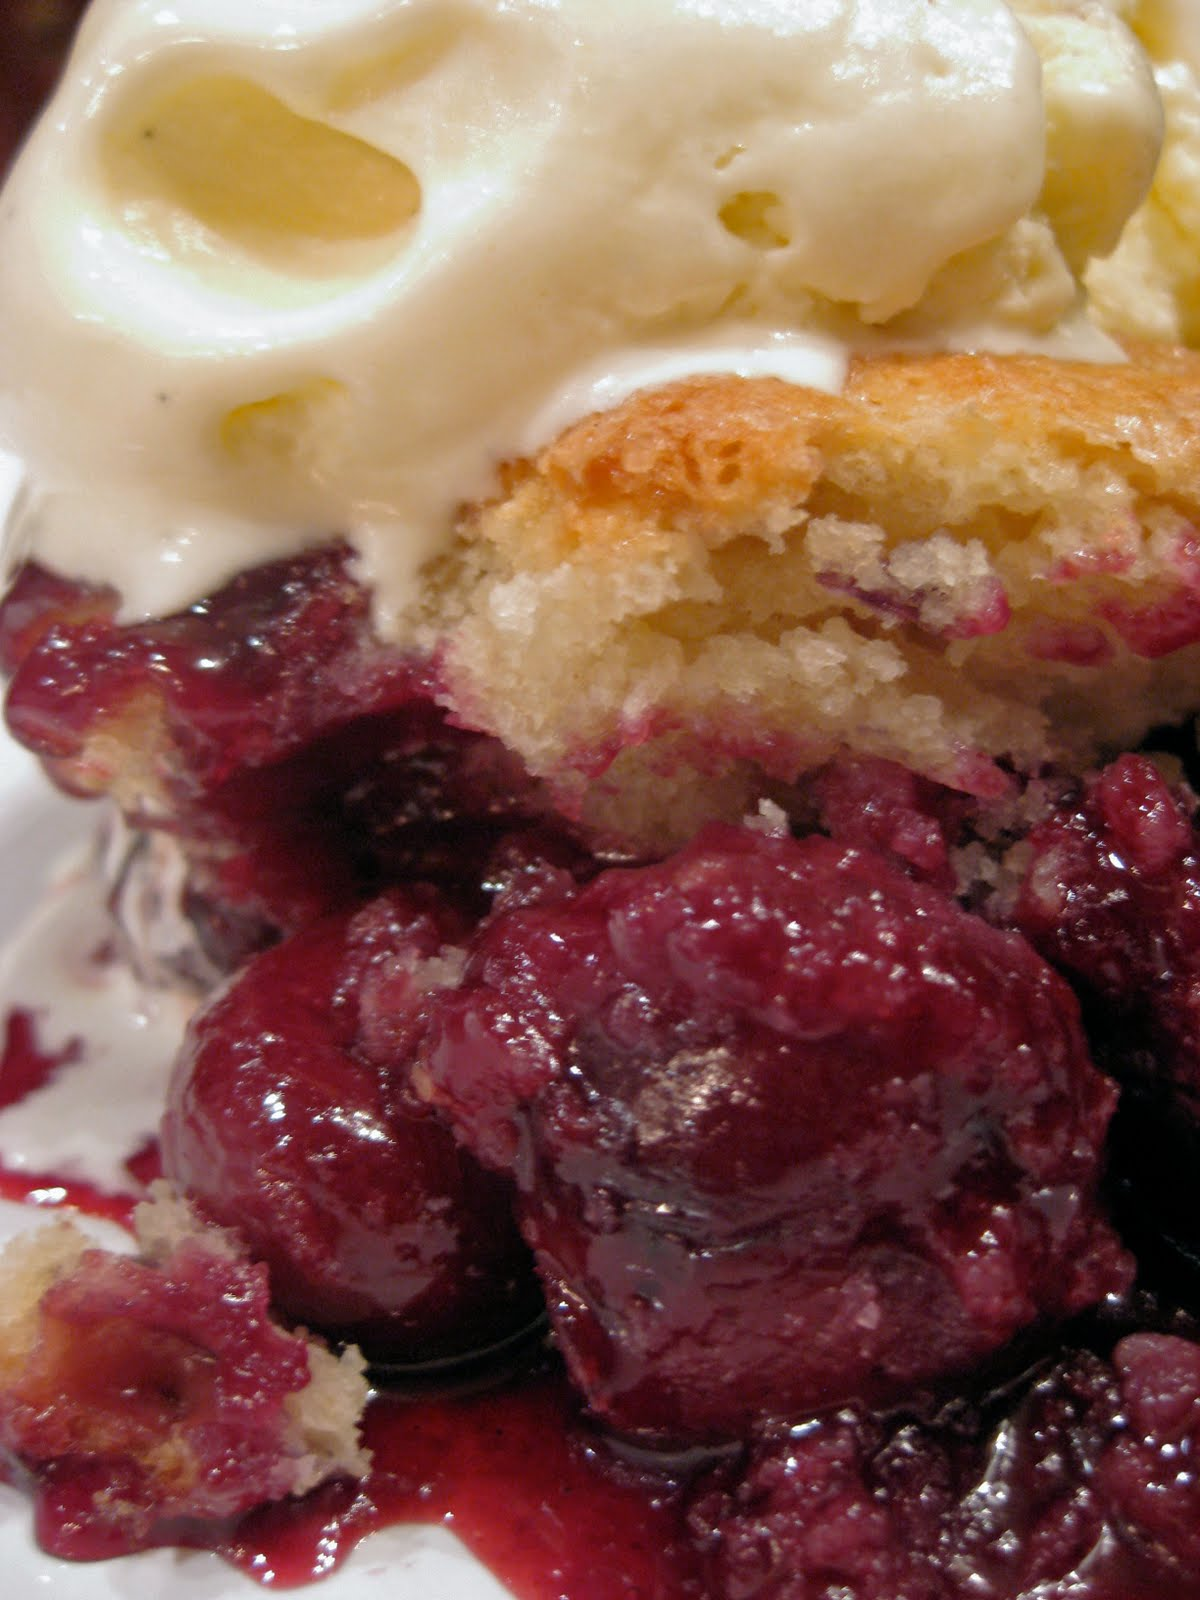 Cherry Cobbler with Vanilla Ice Cream